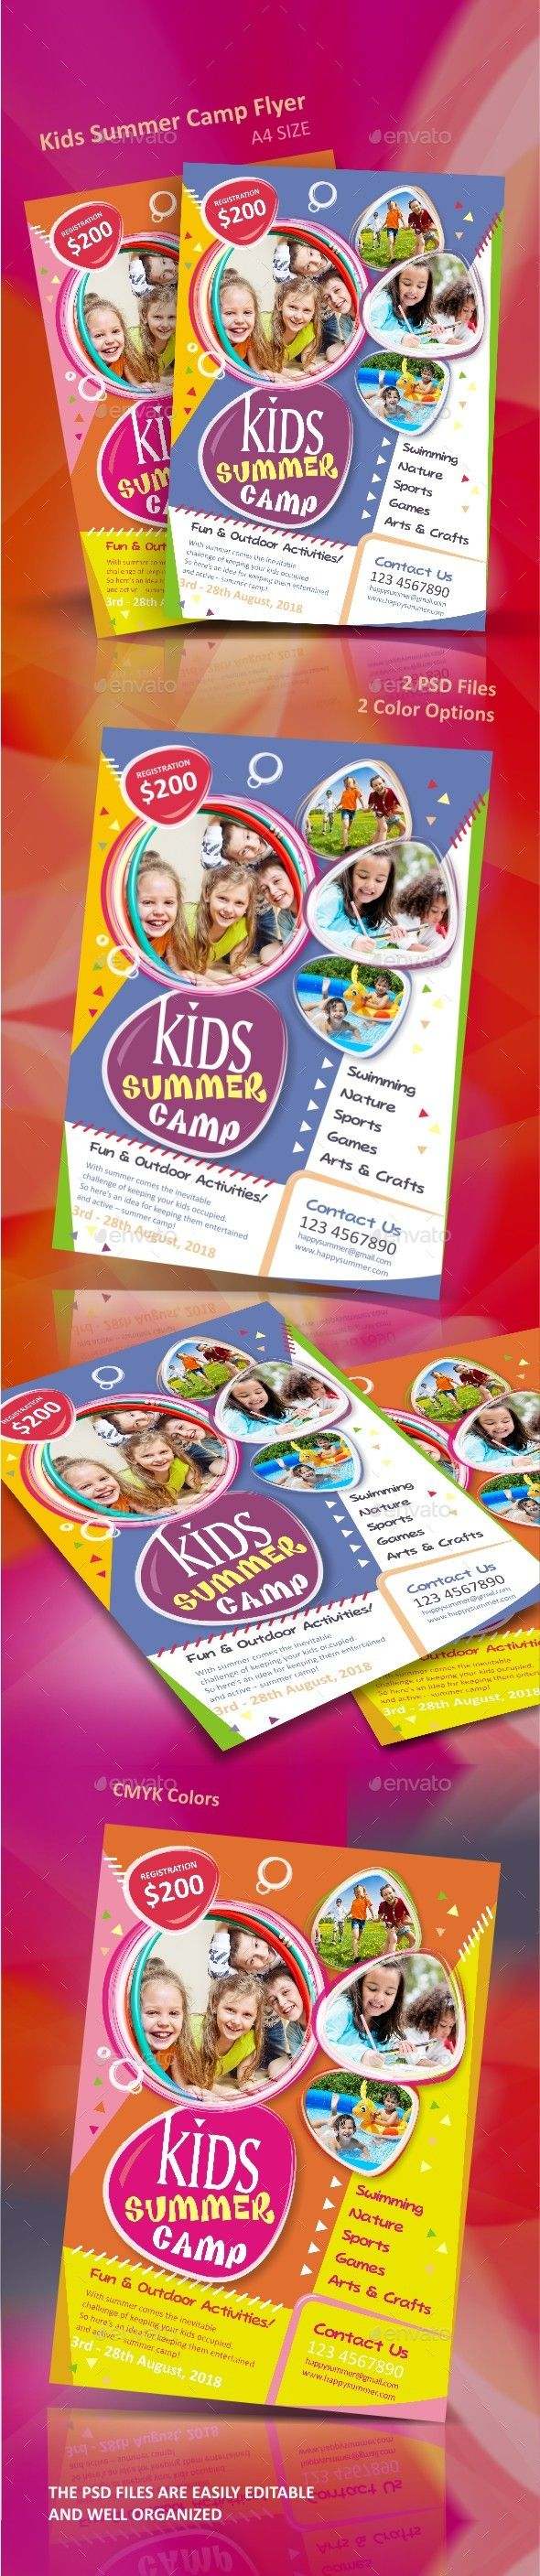 Kids Summer Camp Flyer Template PSD. Download here: http://graphicriver.net/item/kids-summer-camp-flyer/16148297?ref=ksioks